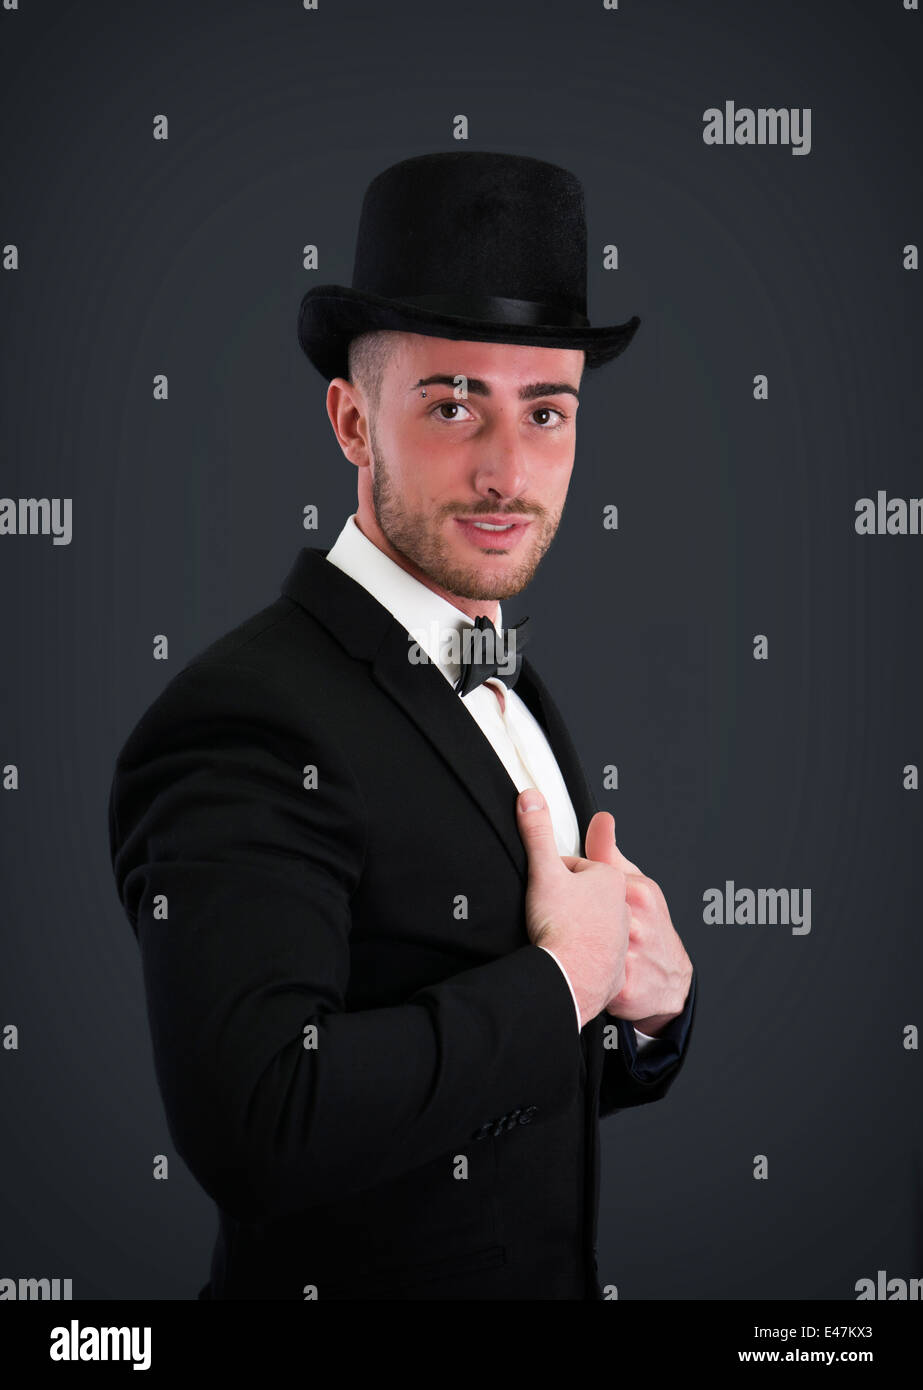 Attractive young businessman with suit, top-hat and bowtie on dark background - Stock Image